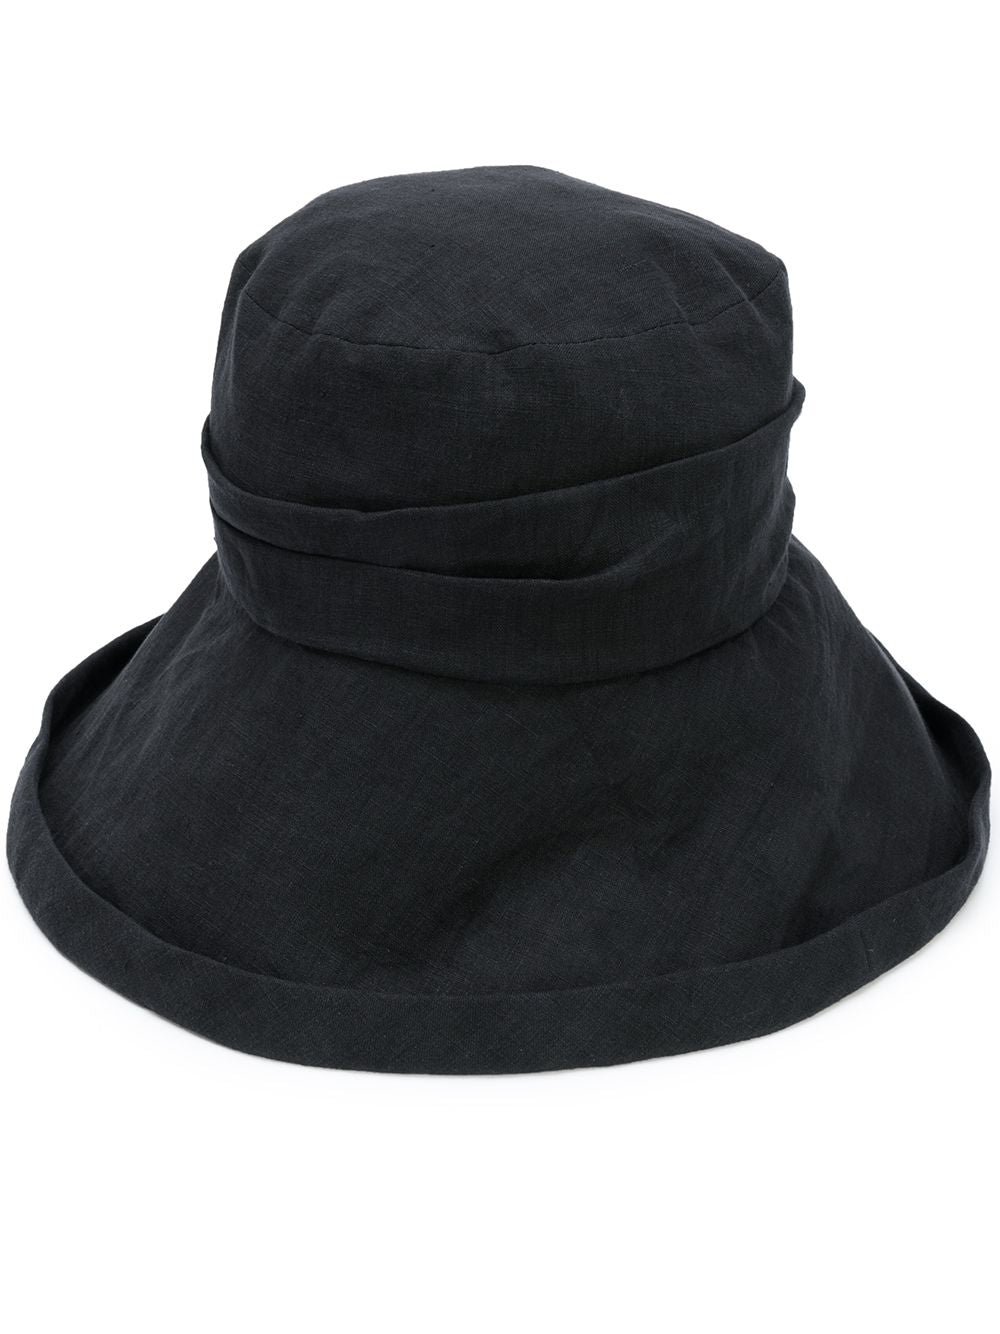 Y'S WOMEN BIG CLPCHE HAT